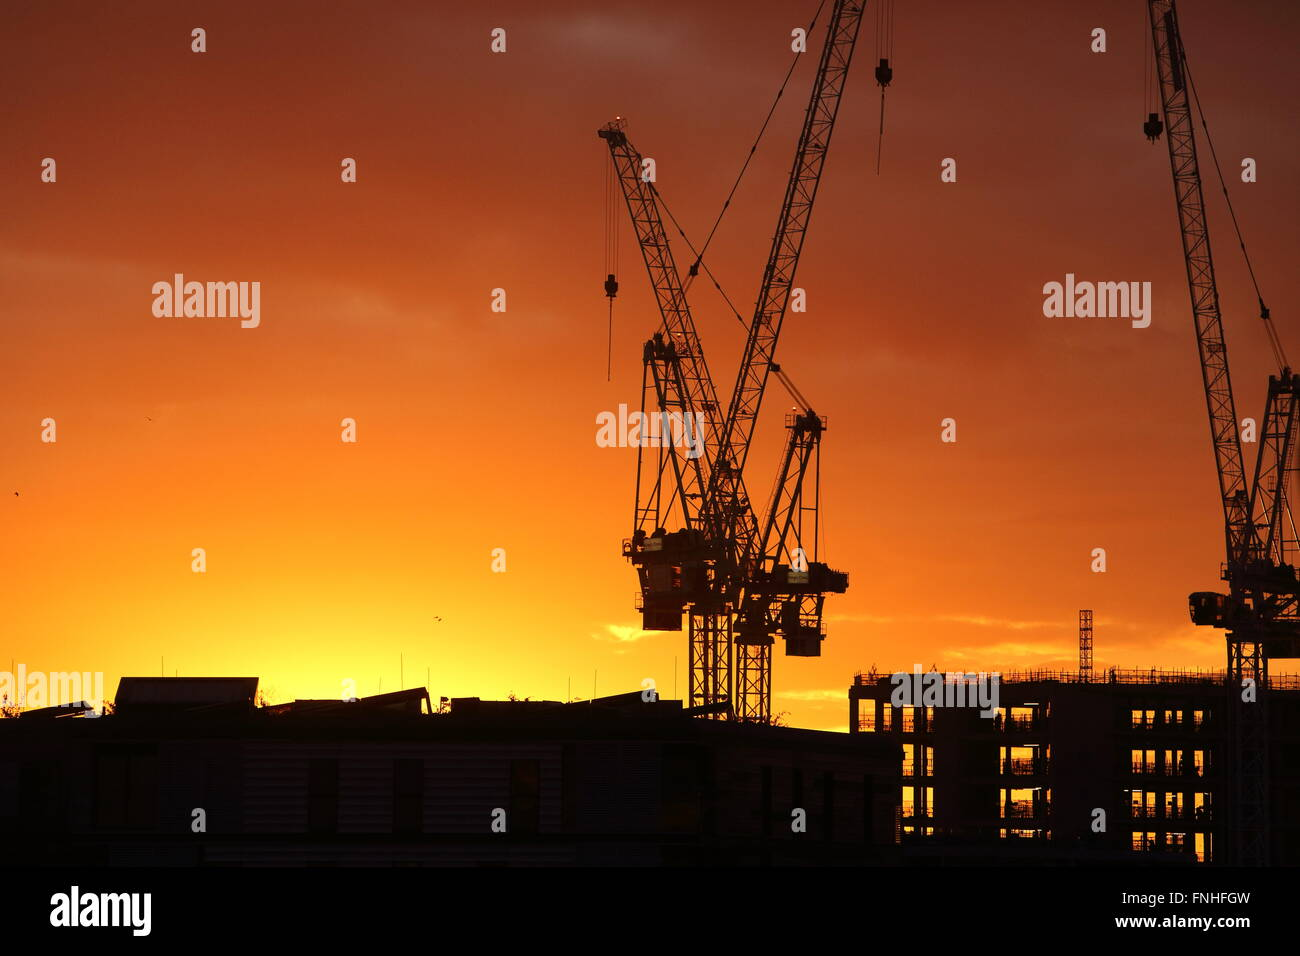 Silhouette of cranes and construction work at sunset, at Kings Cross, north London, England, UK - Stock Image